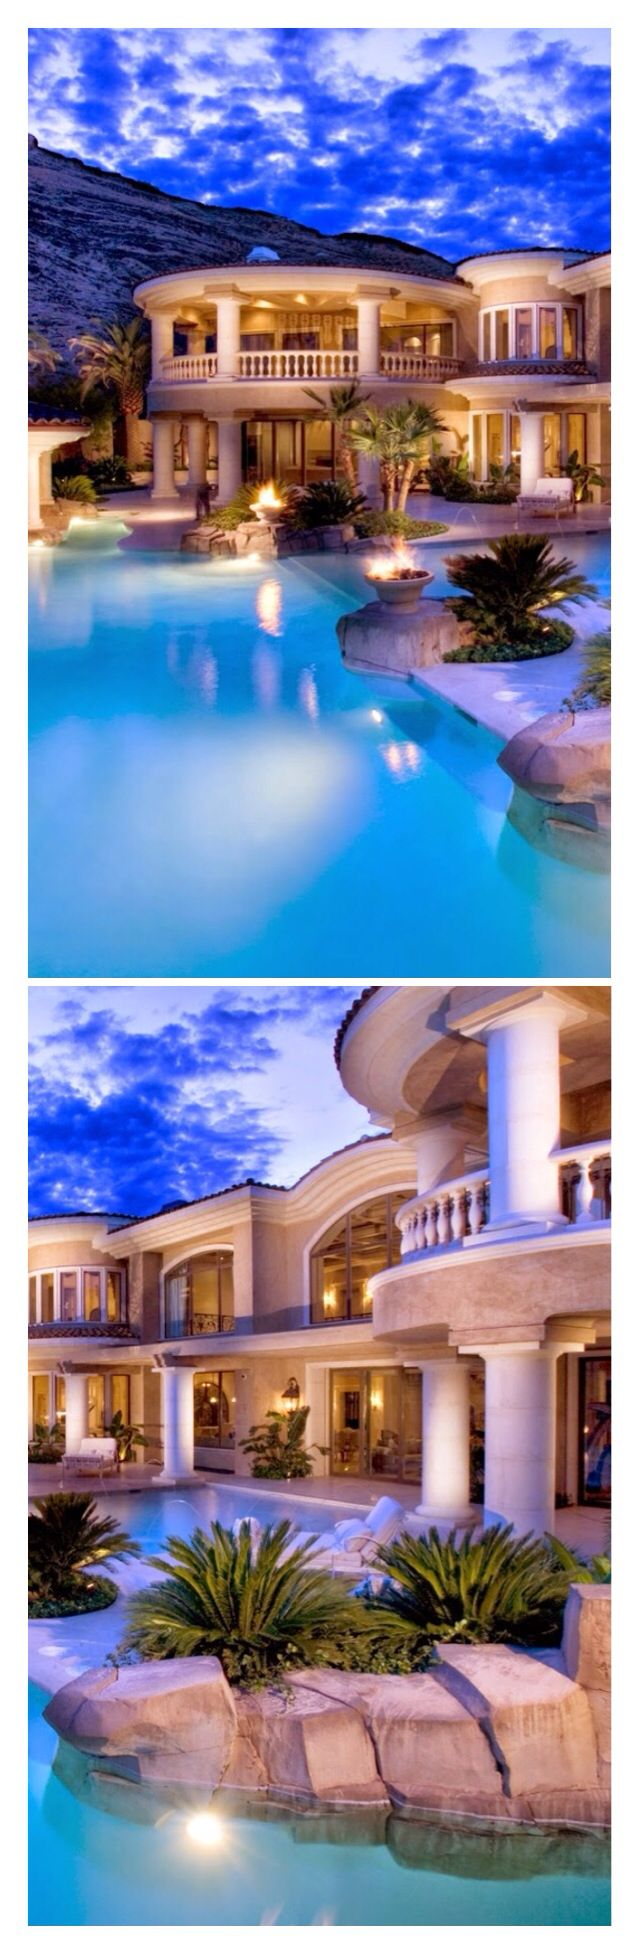 Luxury Homes with Pools and amazing views in the Hollywood